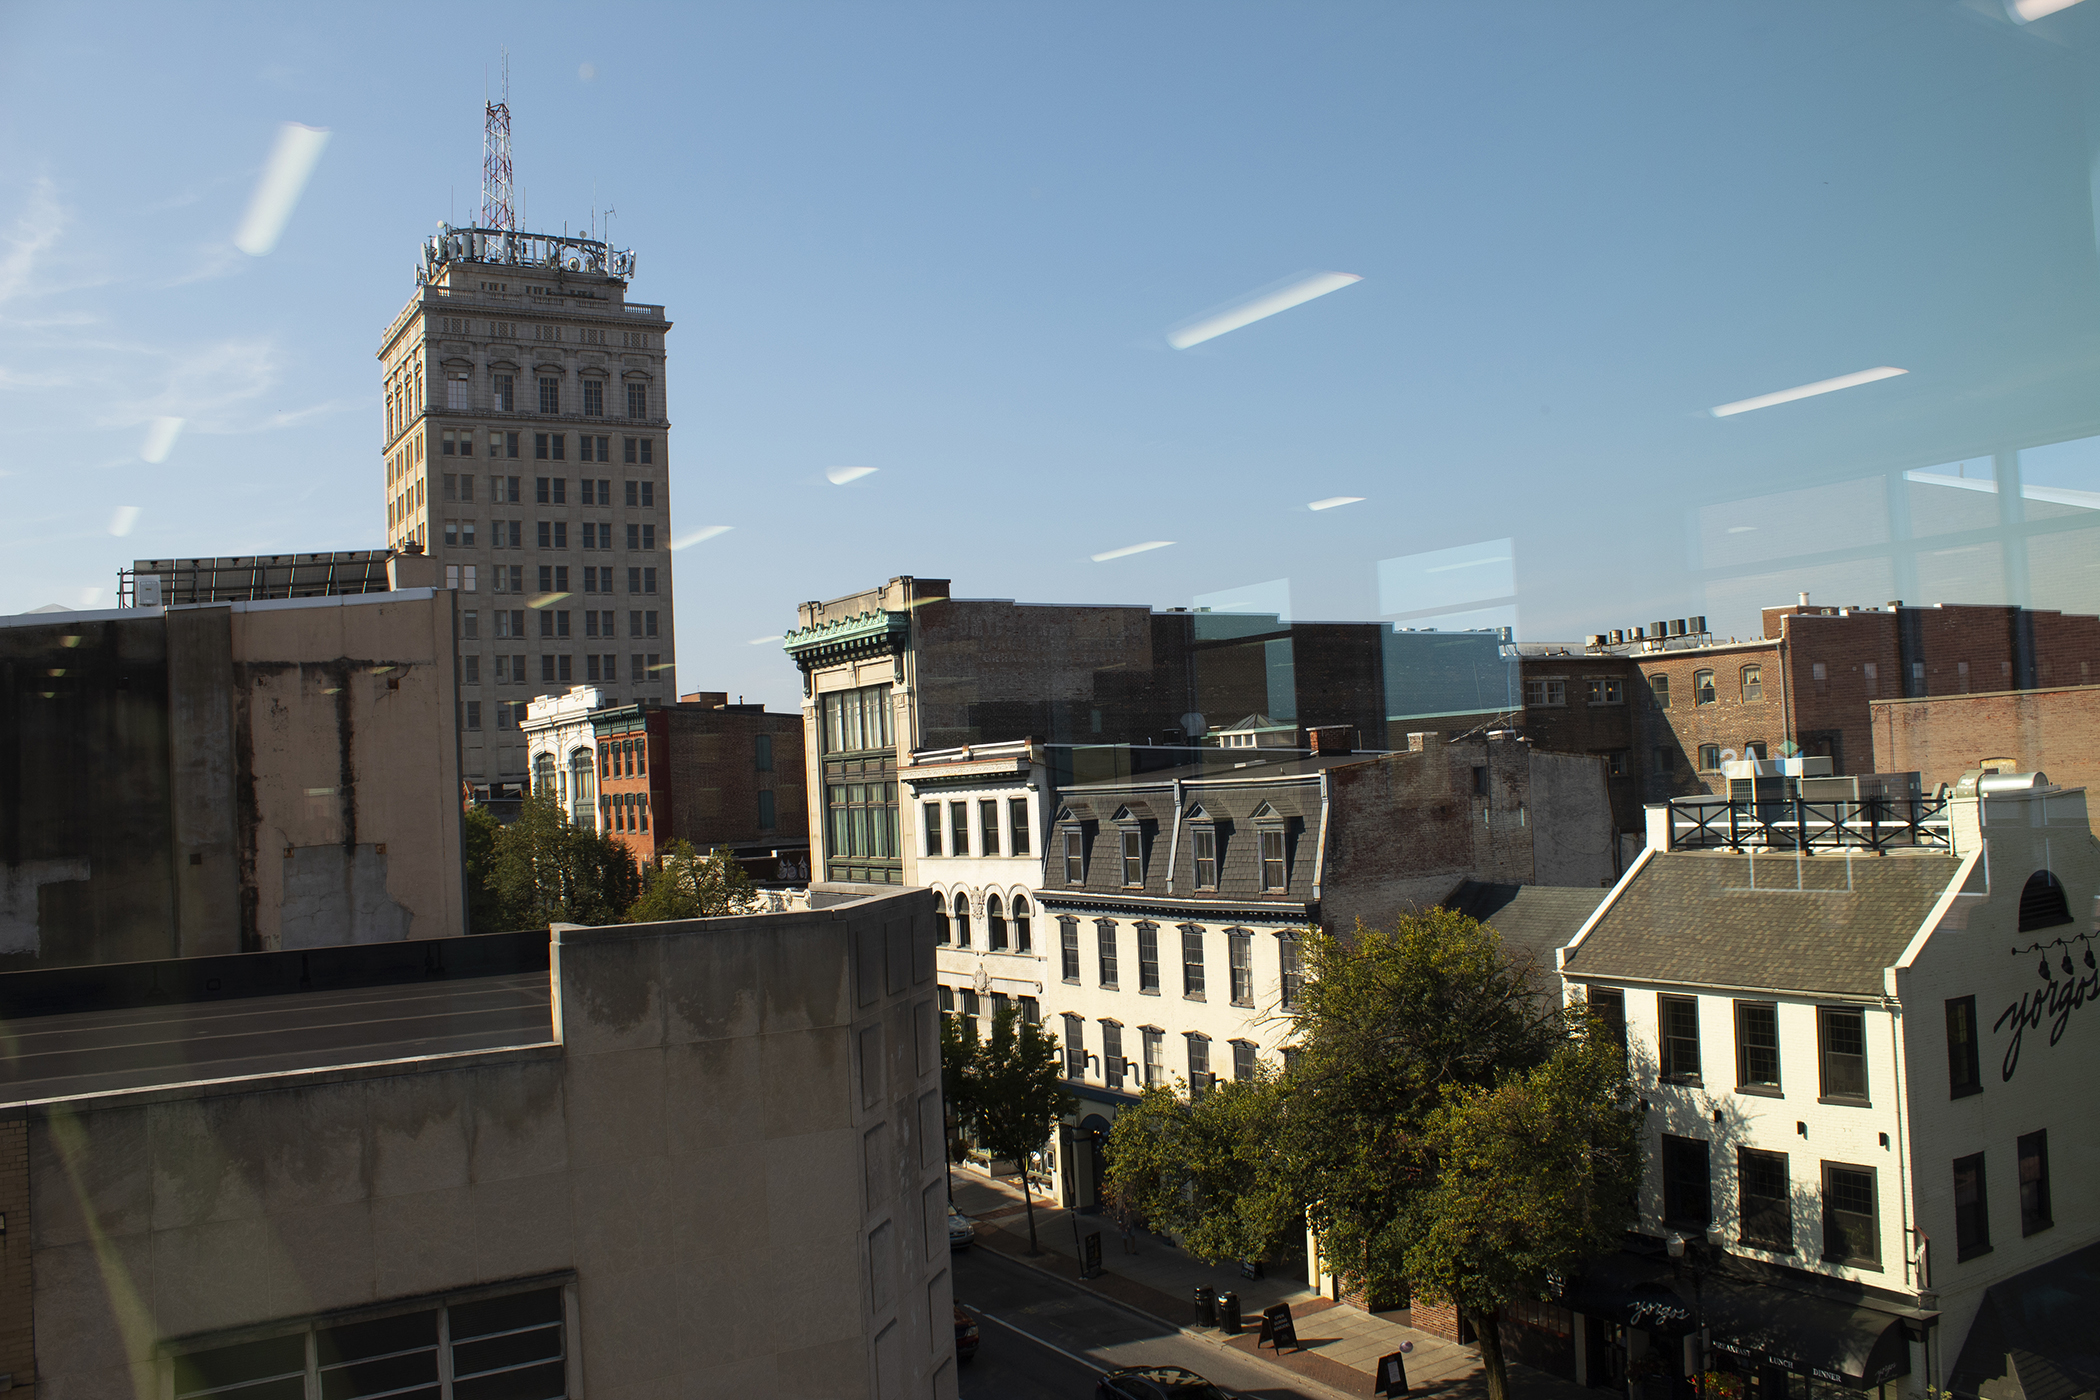 Cargas View of Downtown Lancaster Queen Street